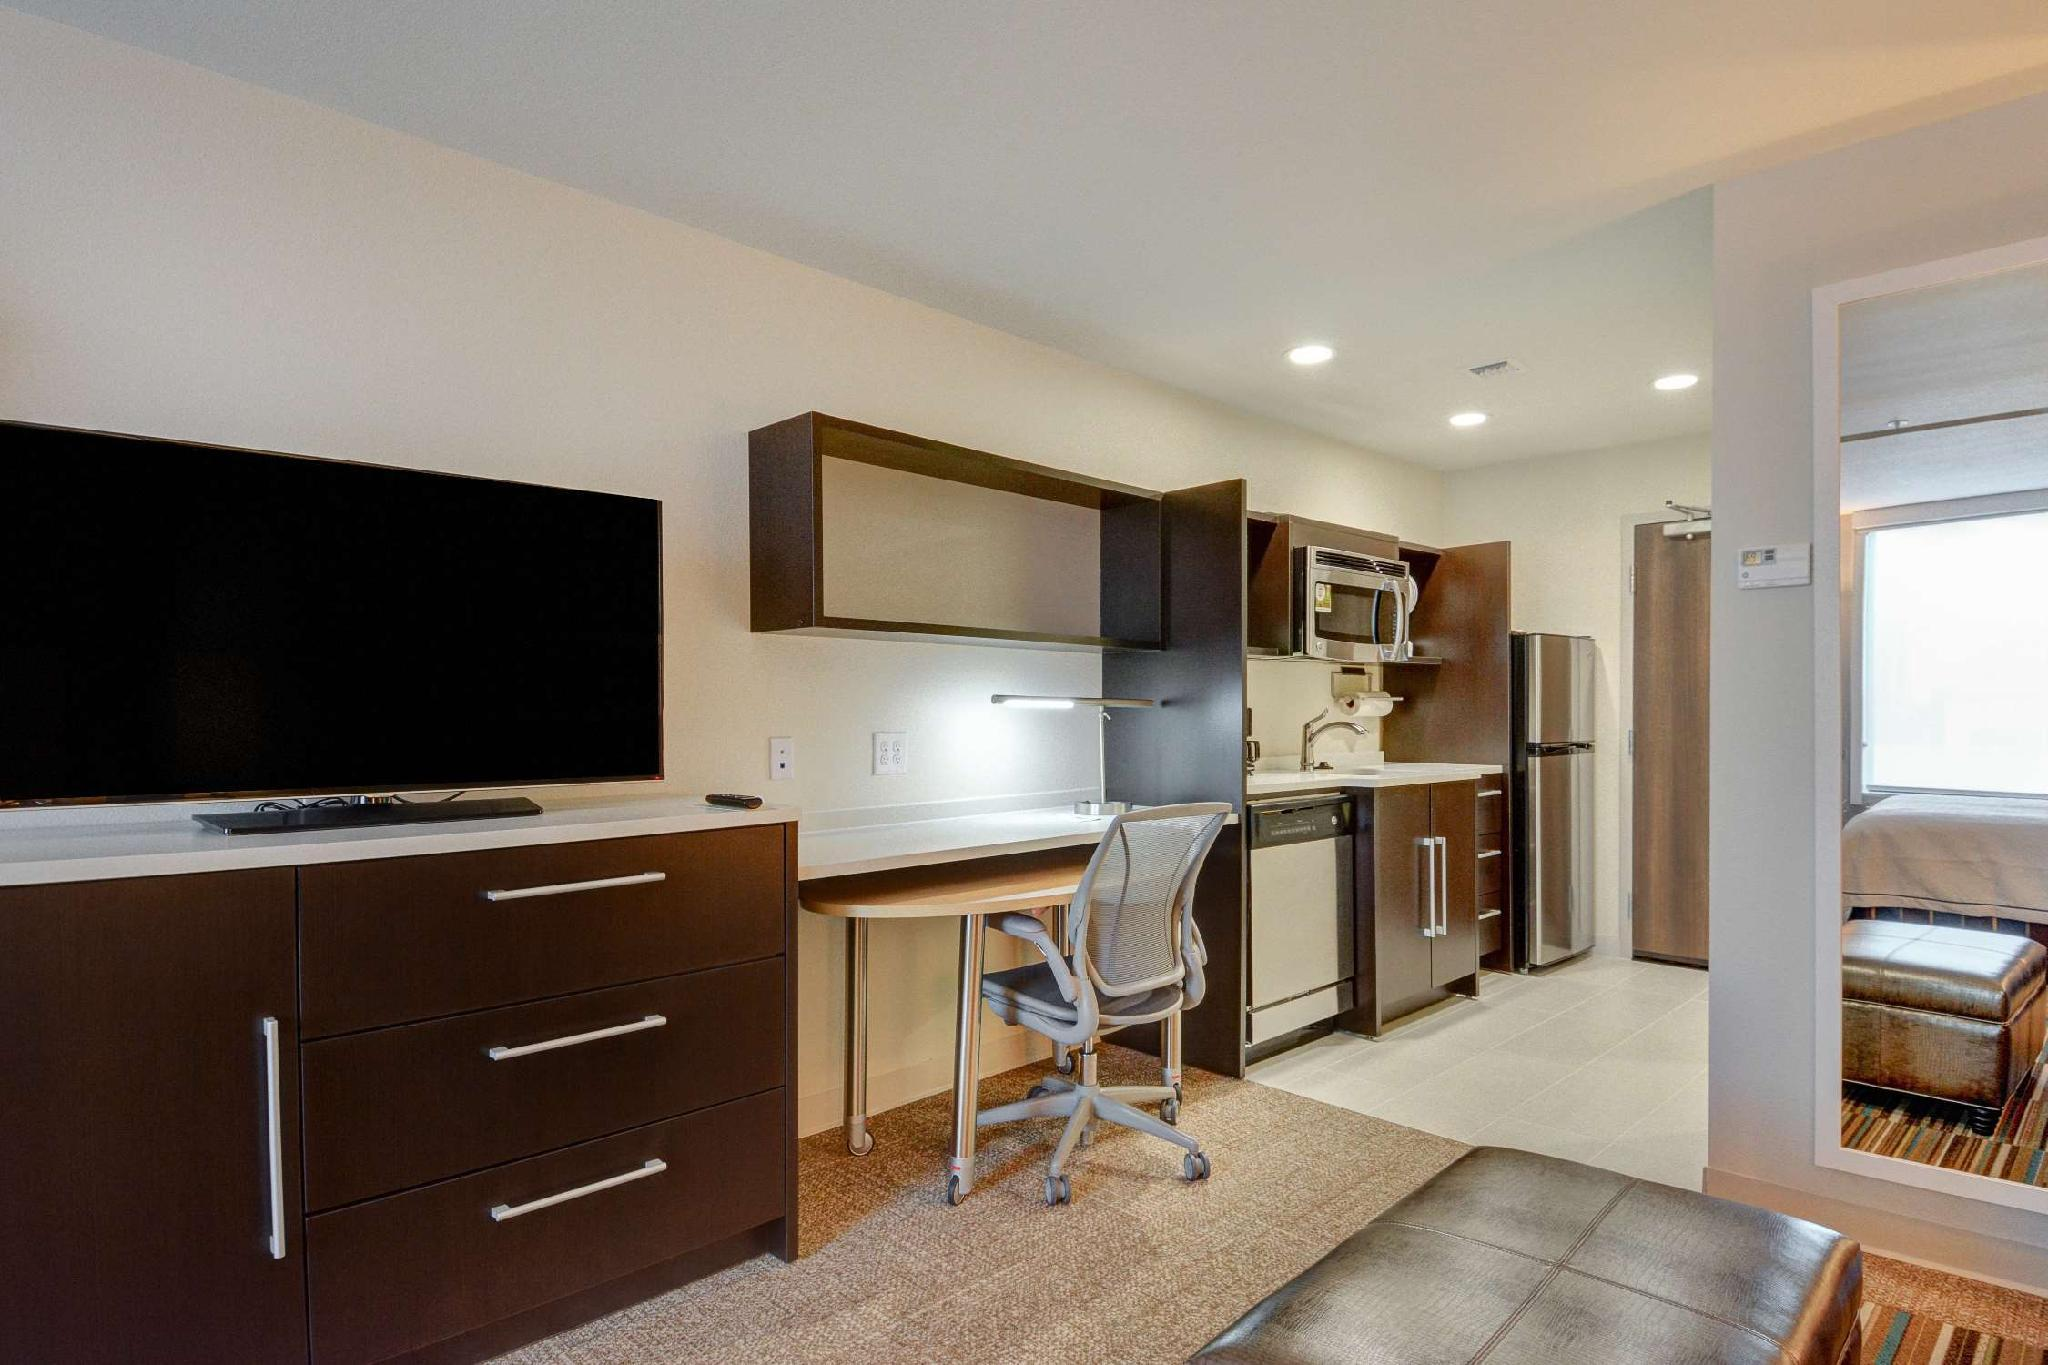 Home2 Suites by Hilton Irving / DFW Airport North, Dallas